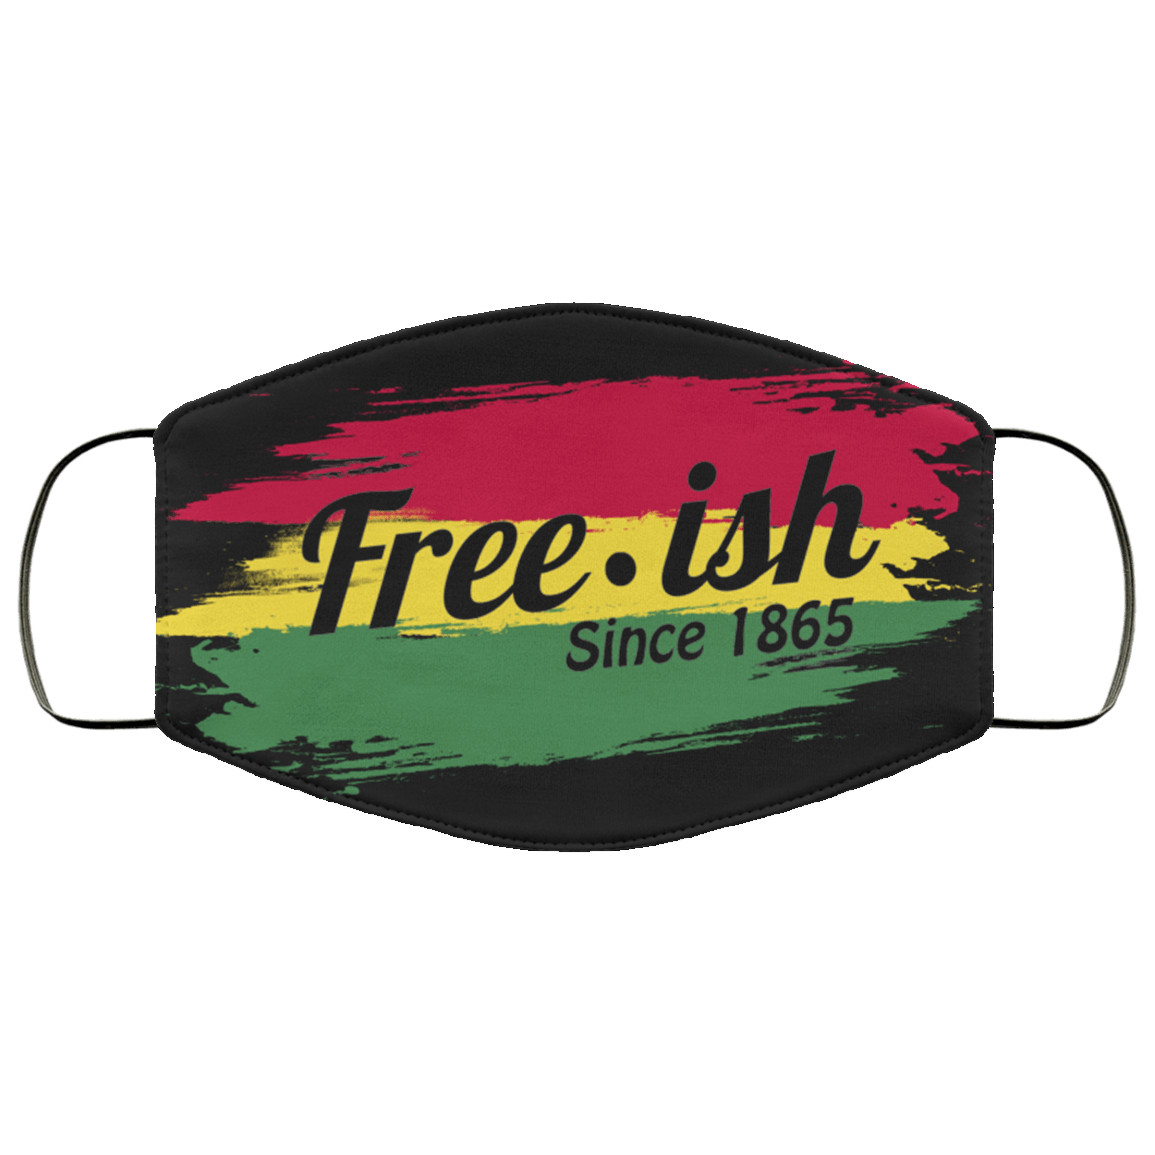 Free-ish Since 1865 Washable Reusable Custom  Printed Cloth Face Mask Cover Reusable machine washable